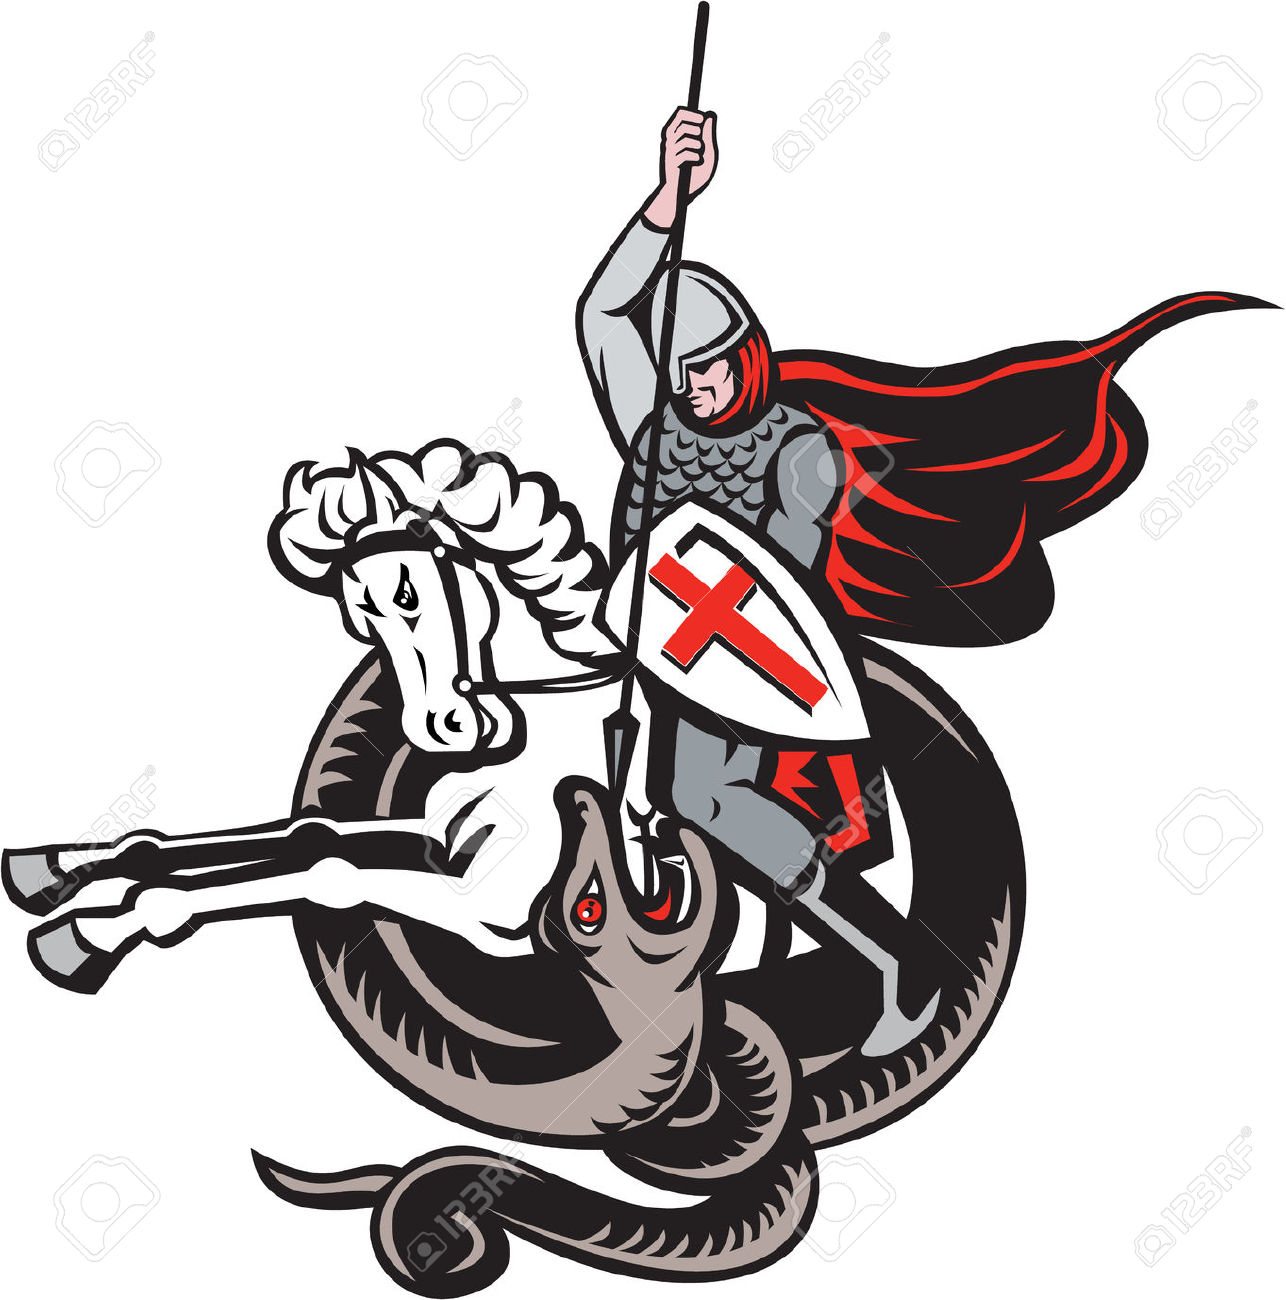 St george and the dragon clipart png free stock St George Dragon Images & Stock Pictures. #62201 ... png free stock